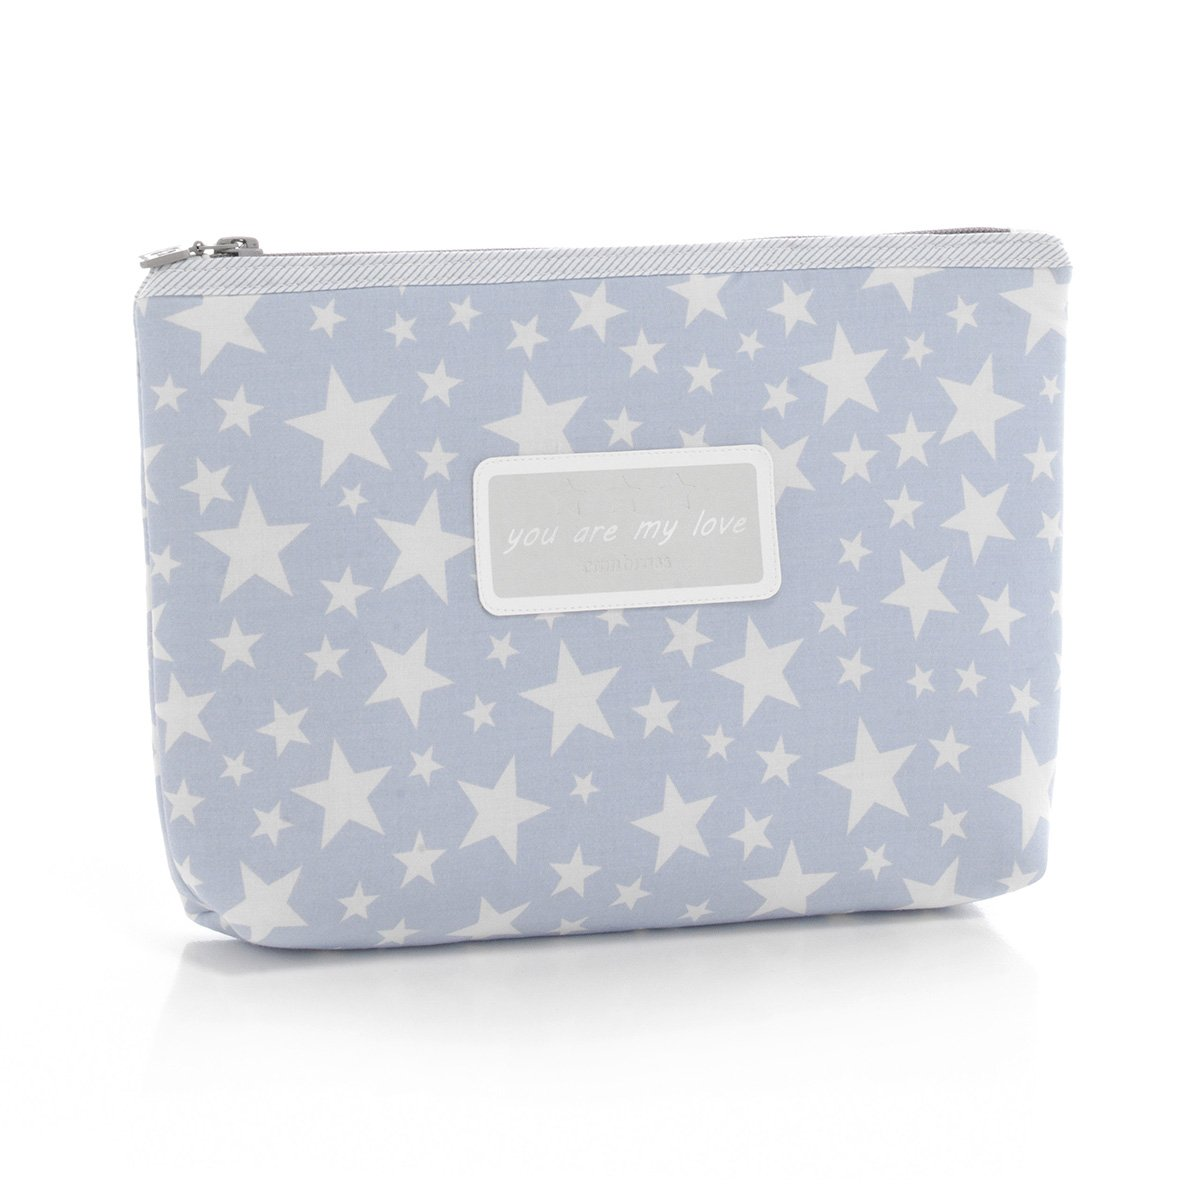 Cambrass Toilet Bag (6 x 28 x 20 cm, Star Blue) 35490.0